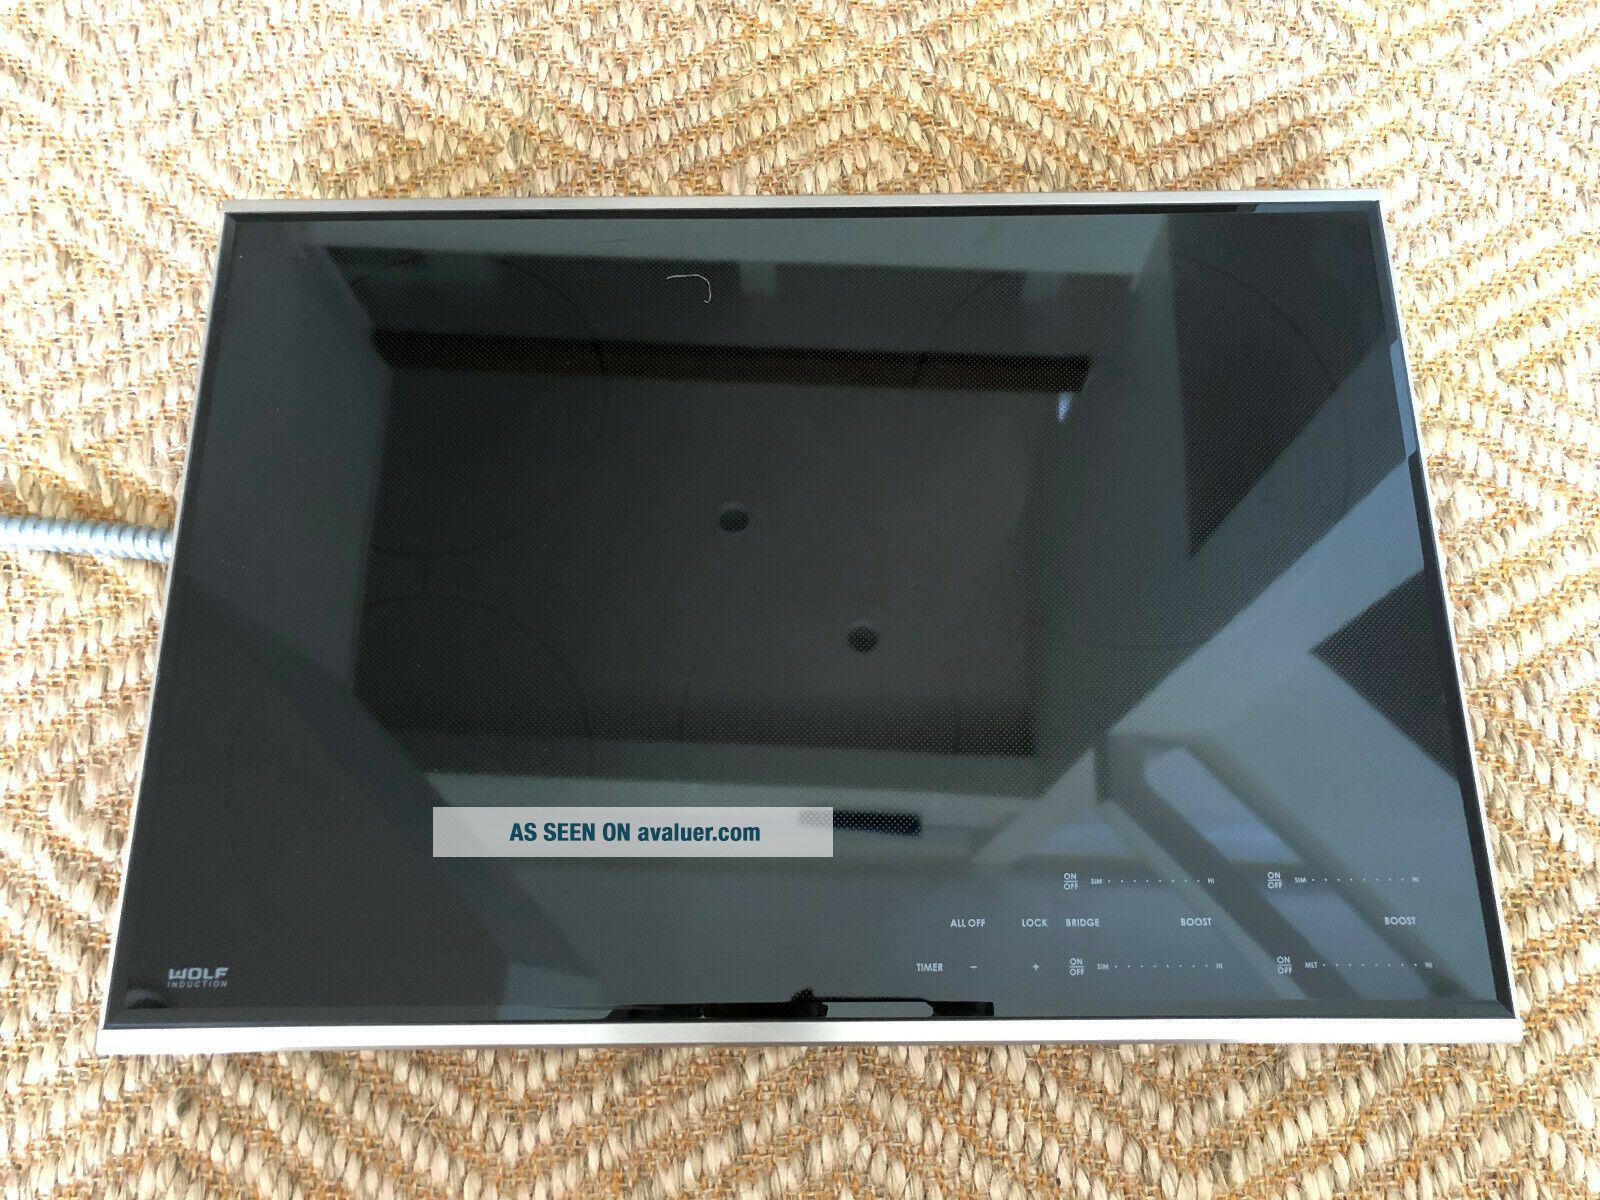 Wolf CI304T/S Induction Cooktop - Black - Rarely.  In